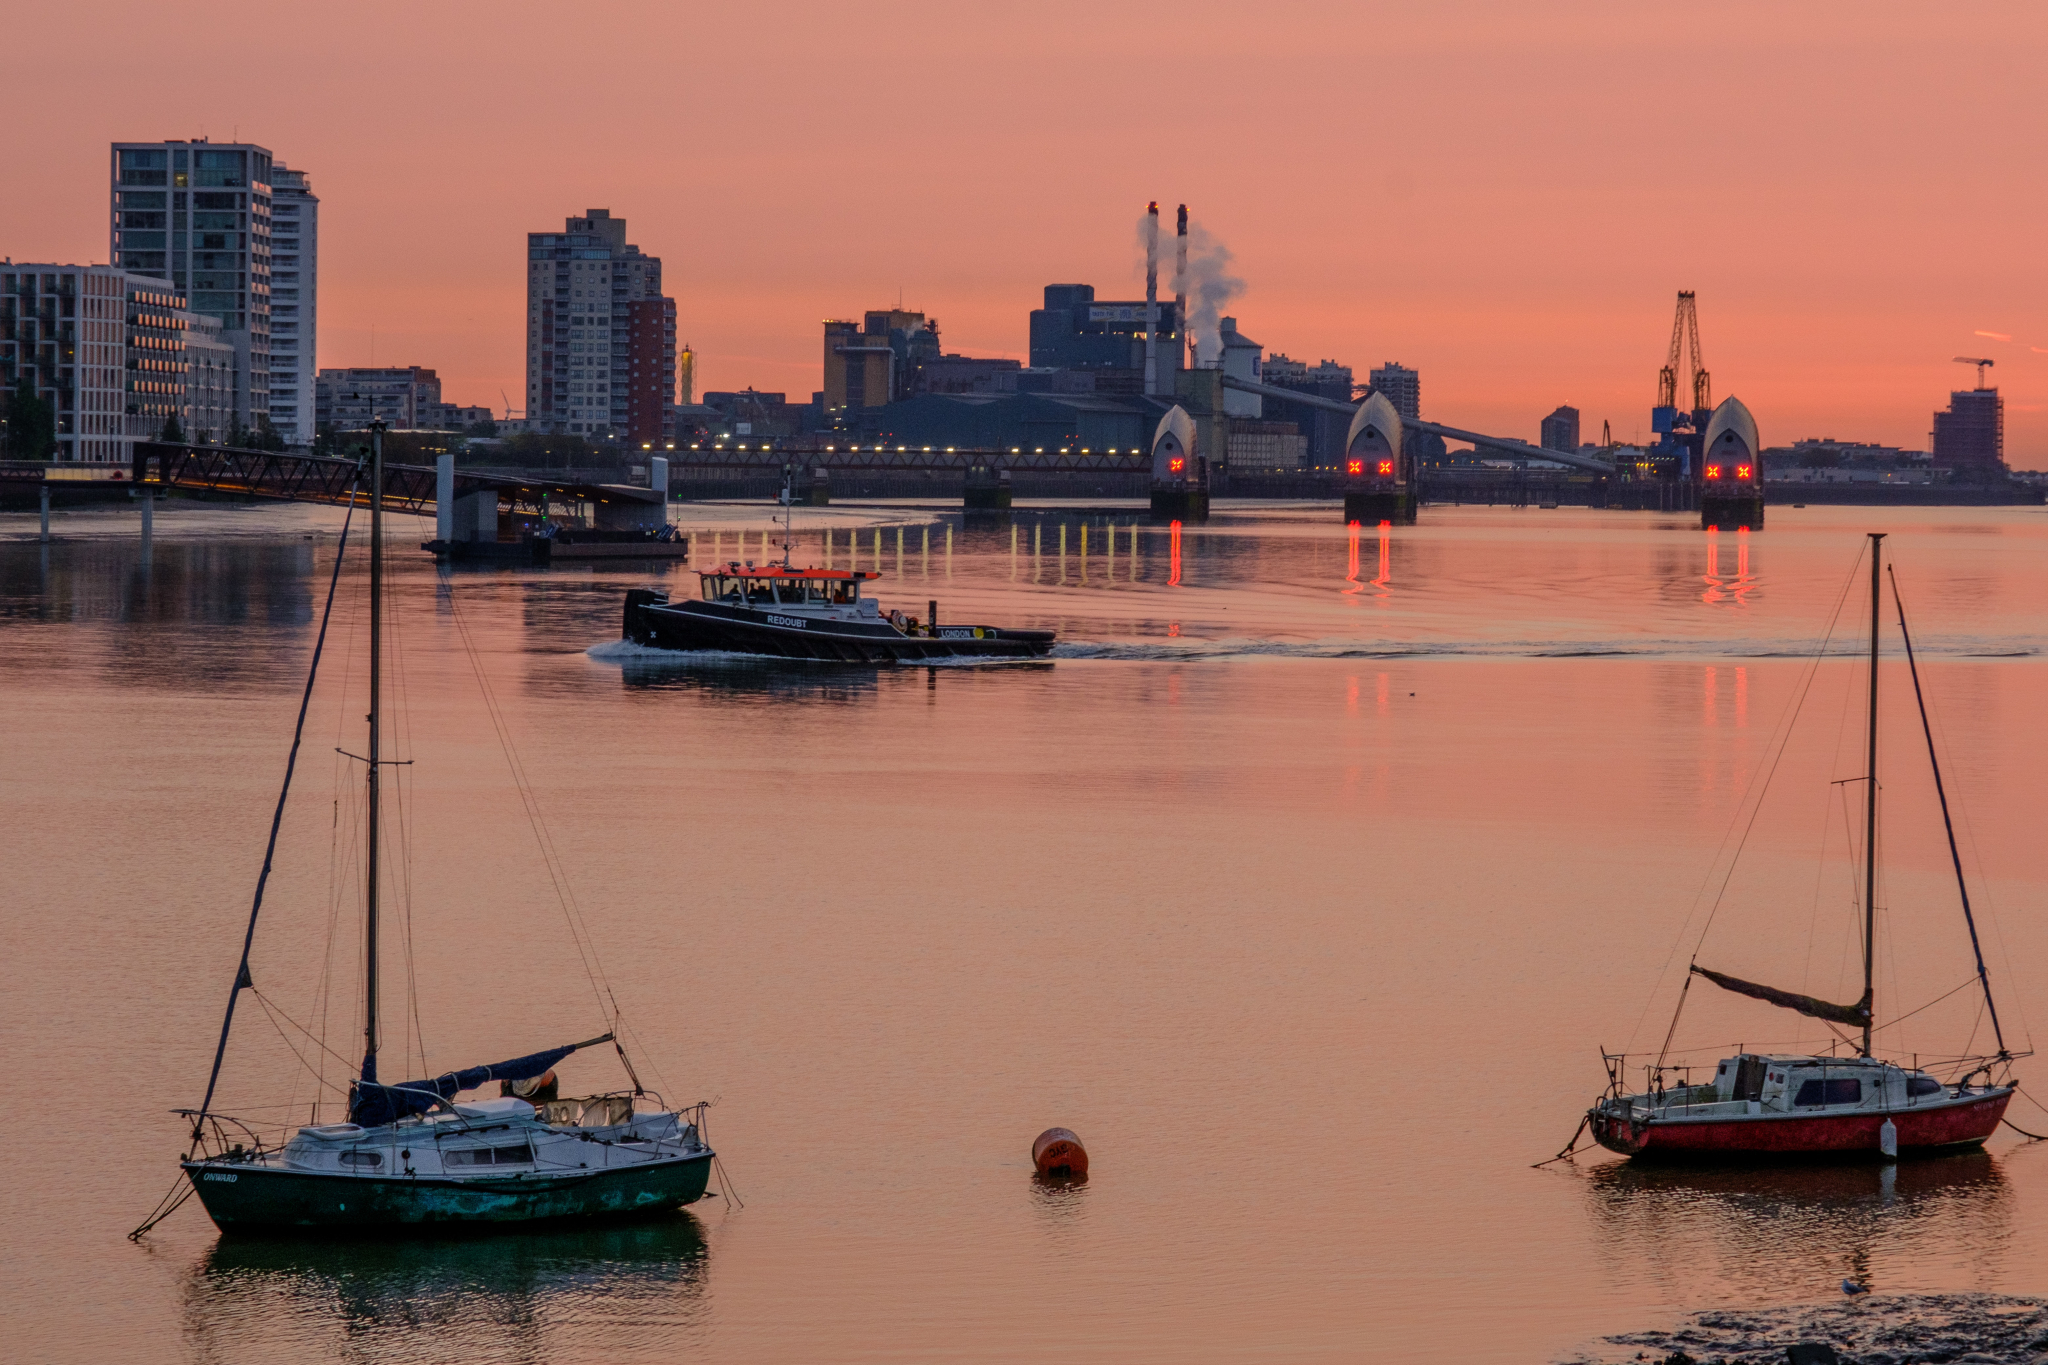 Royal Docks at sunset